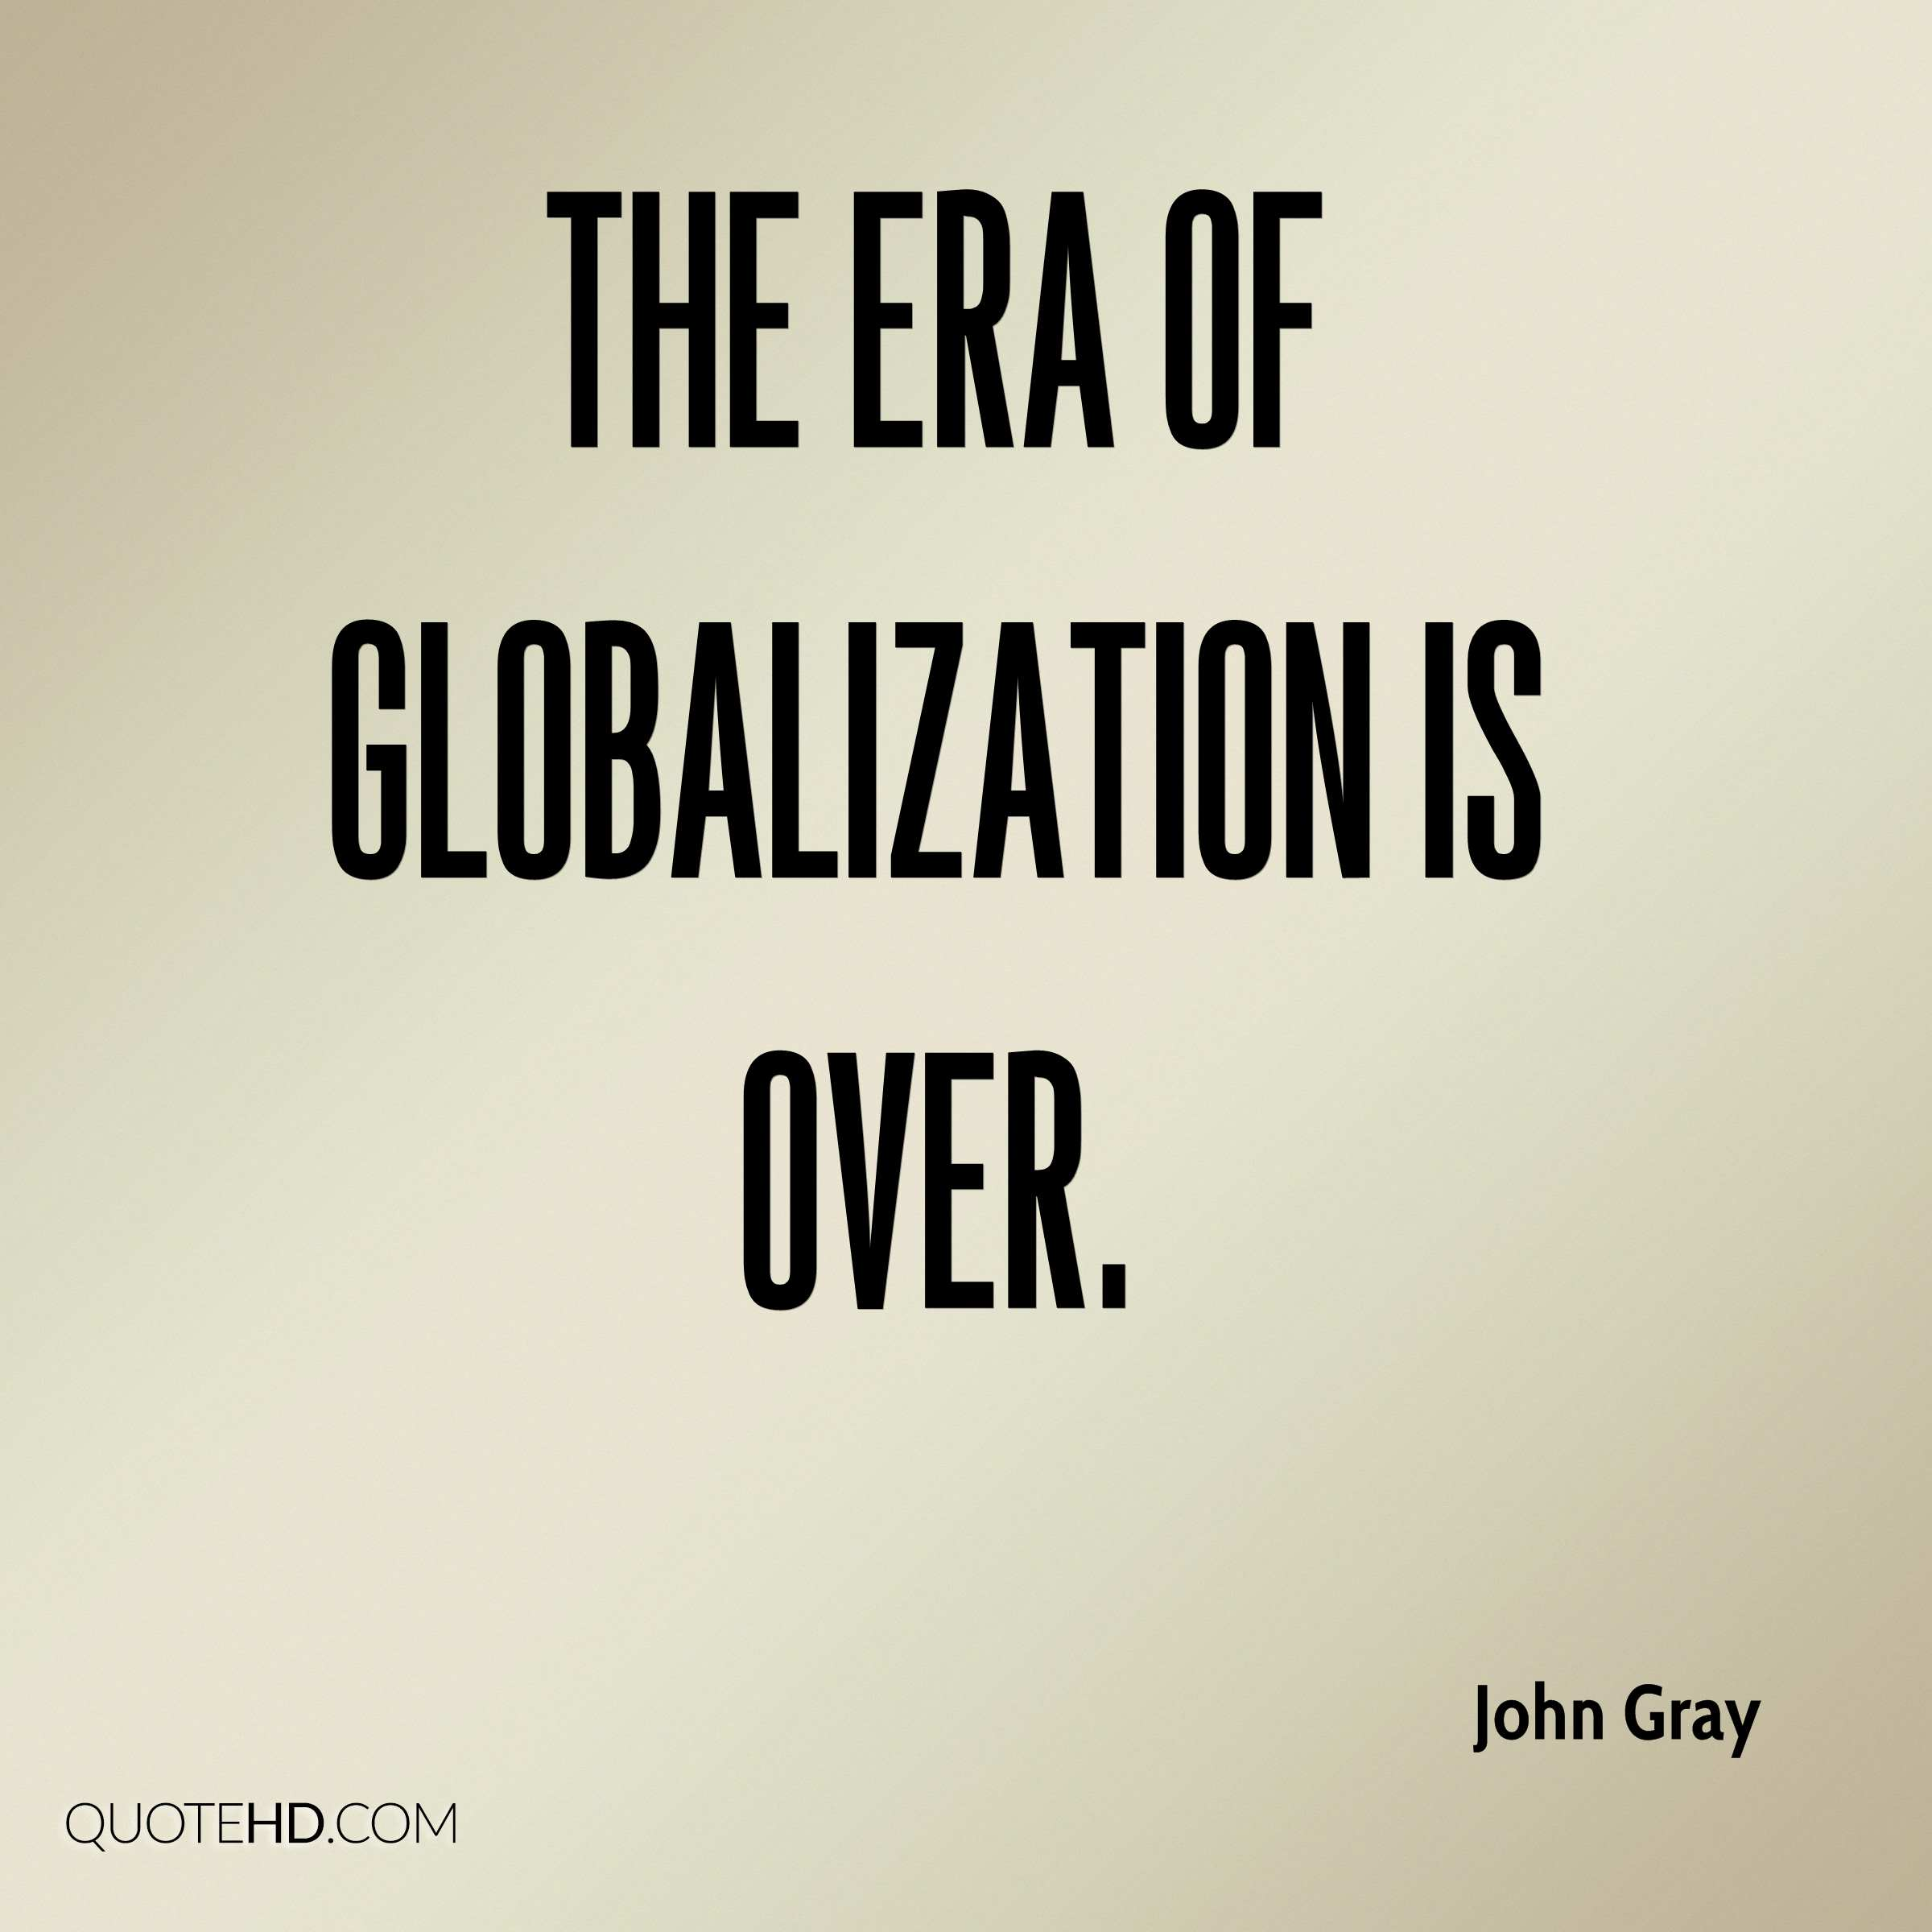 The era of globalization is over.